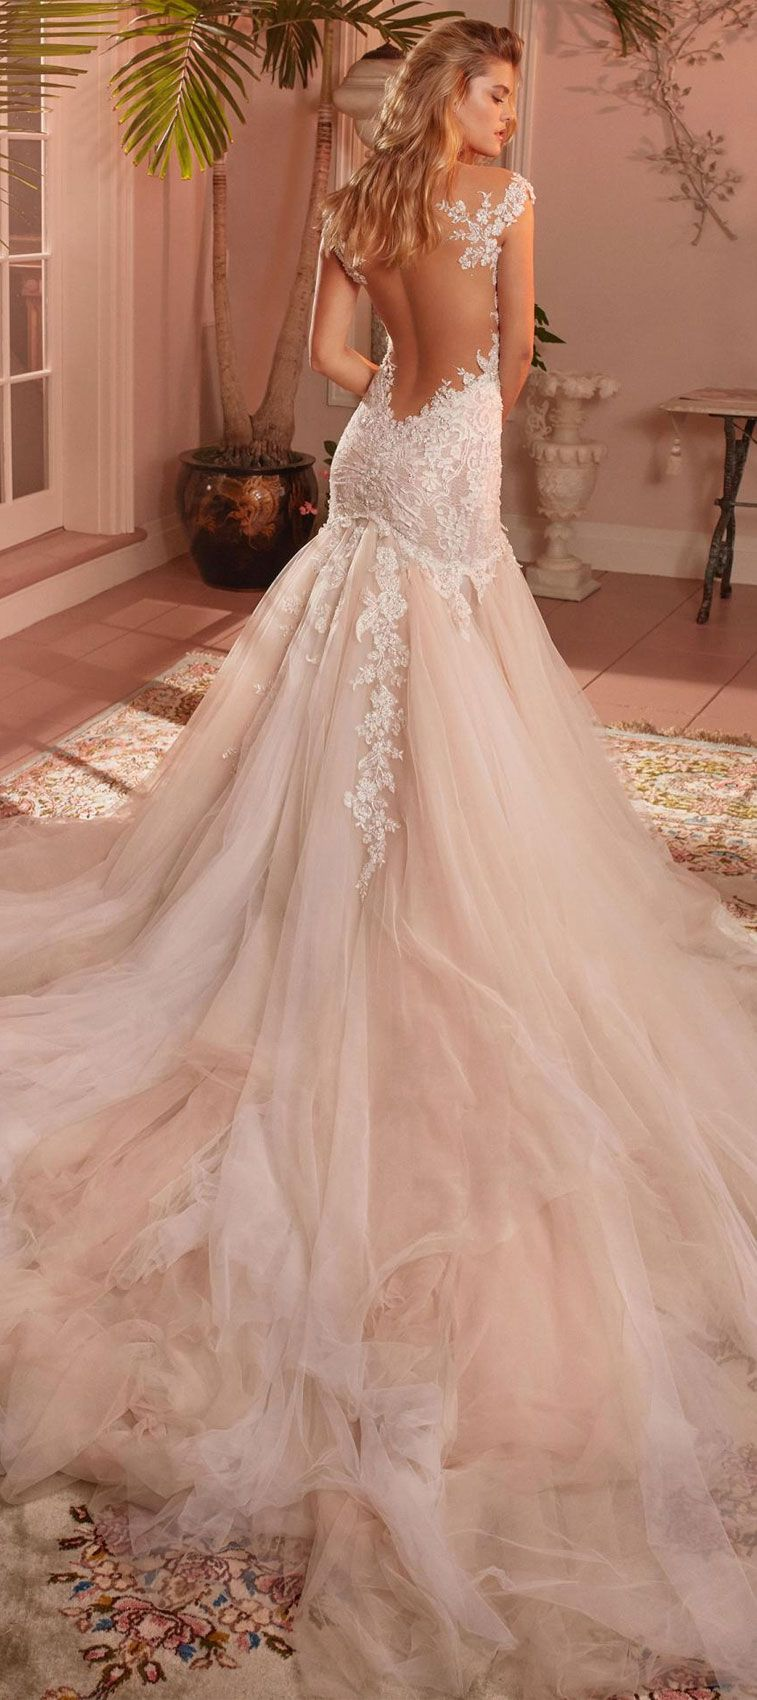 Galia Lahav Wedding Dresses – Queen of Hearts Bridal Collection